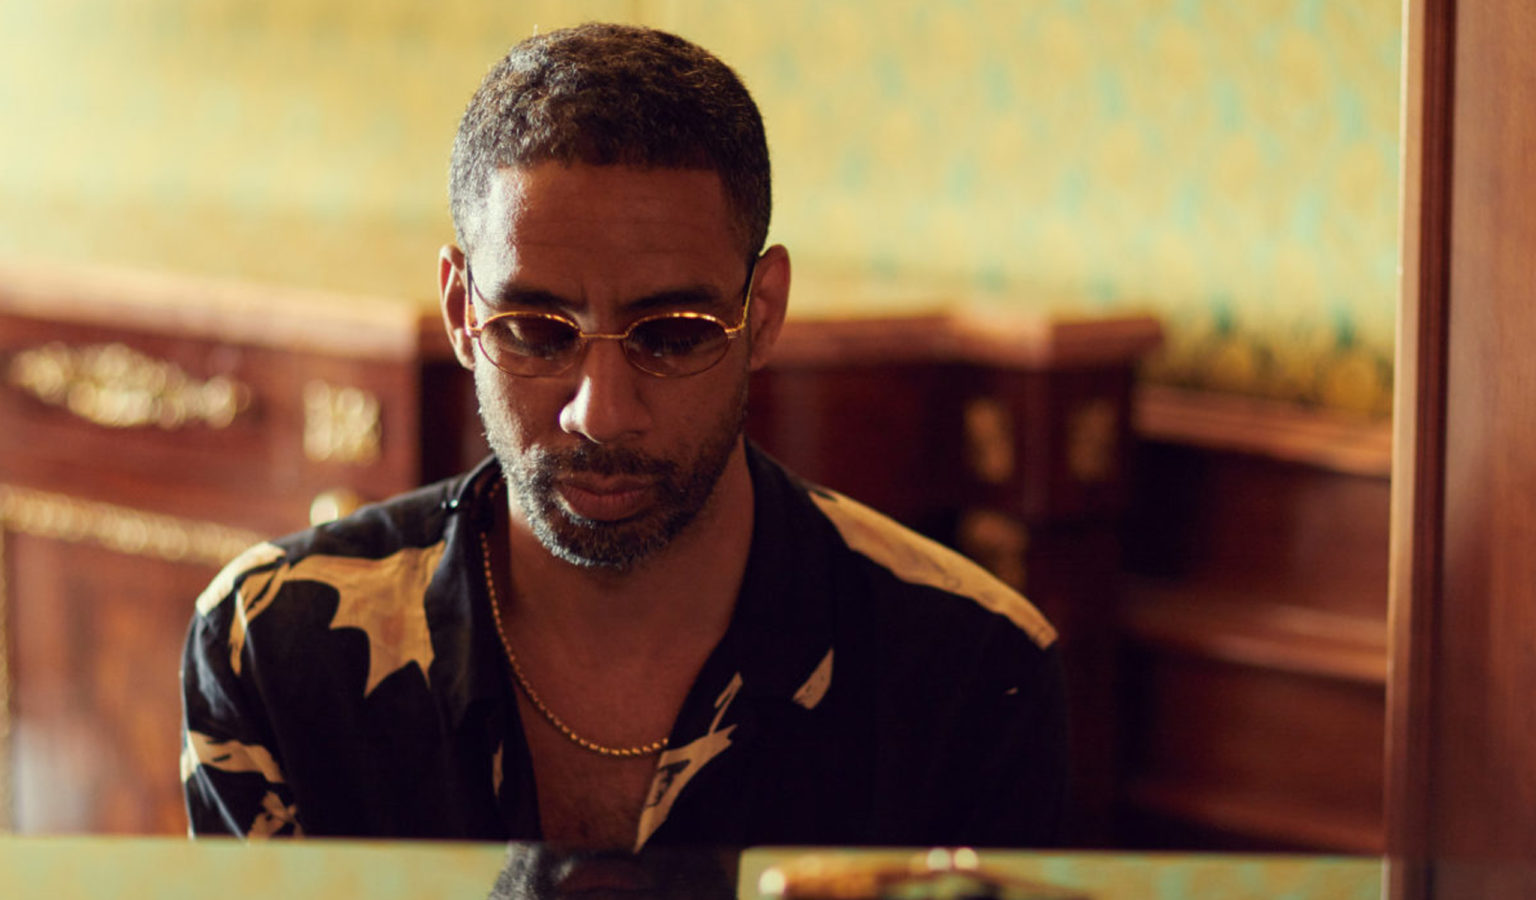 IMANI BEPAALT ryan leslie is underrated